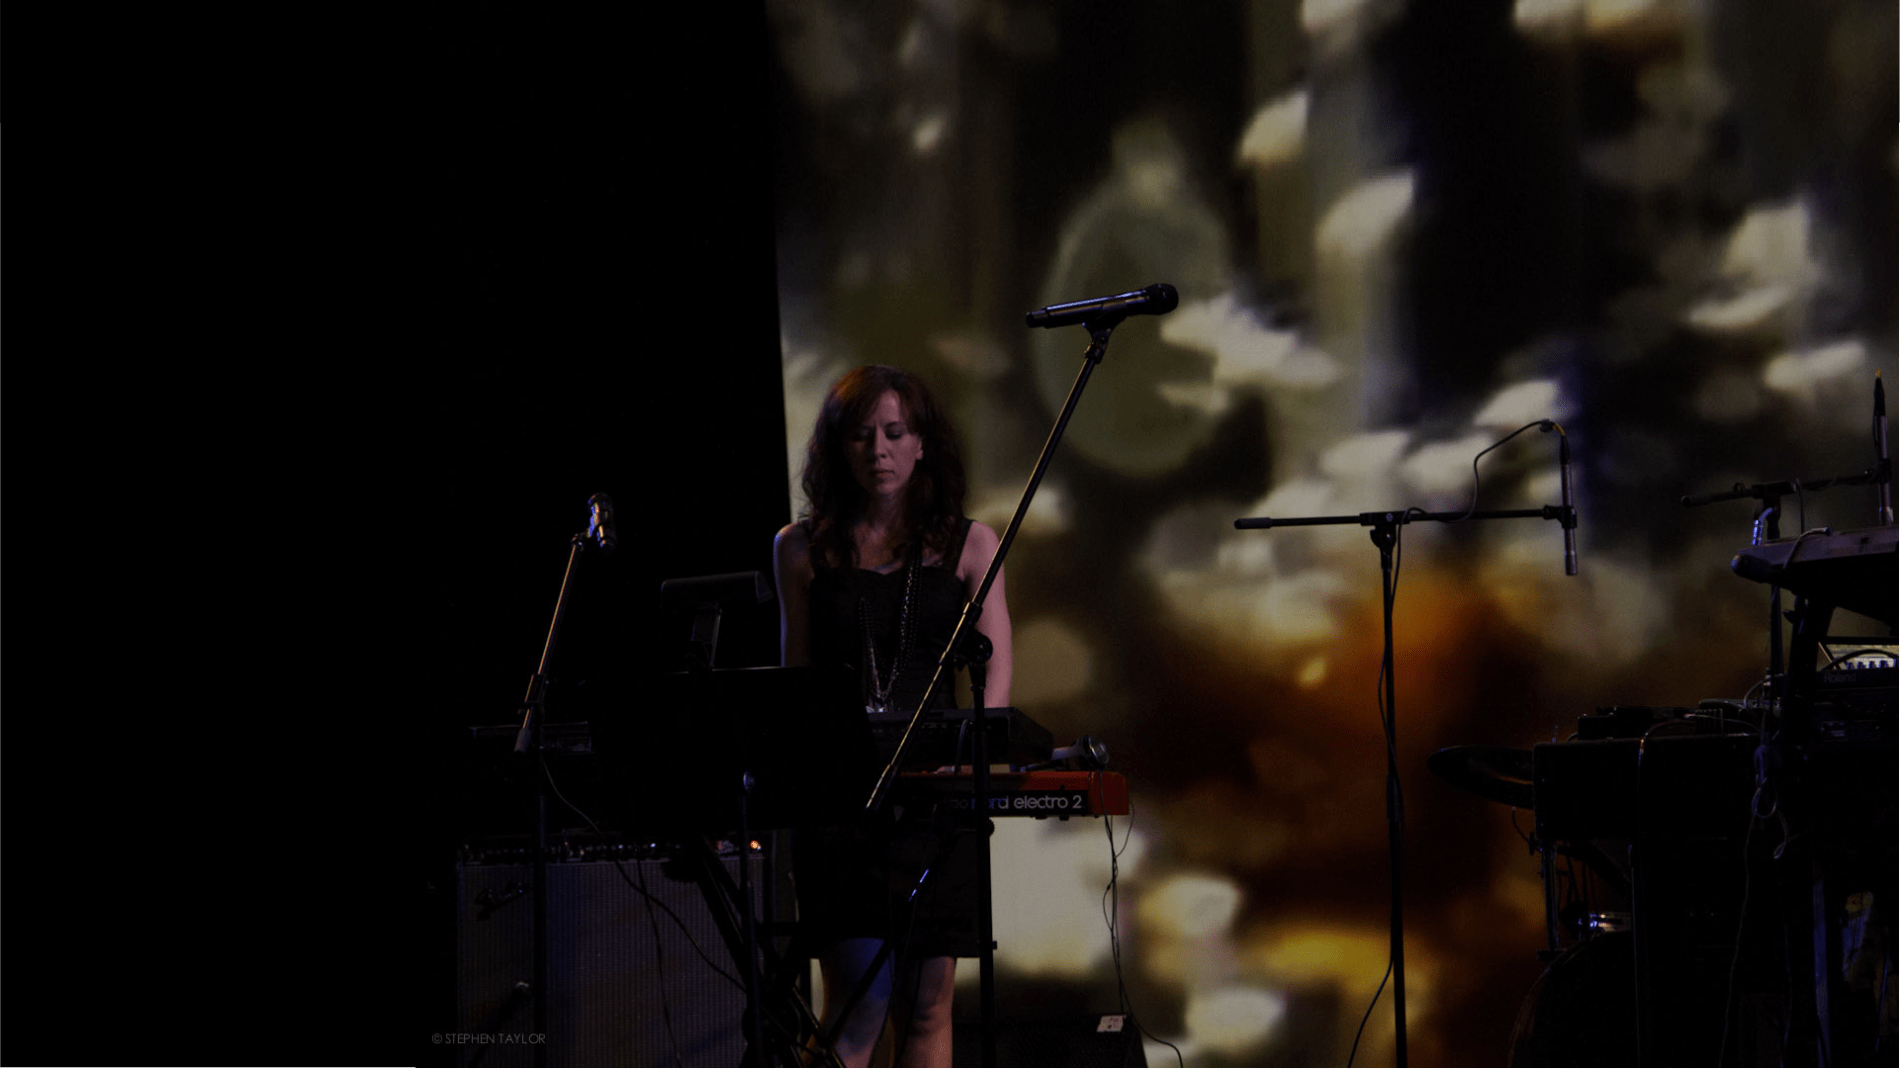 Missy Mazzoli performing on stage